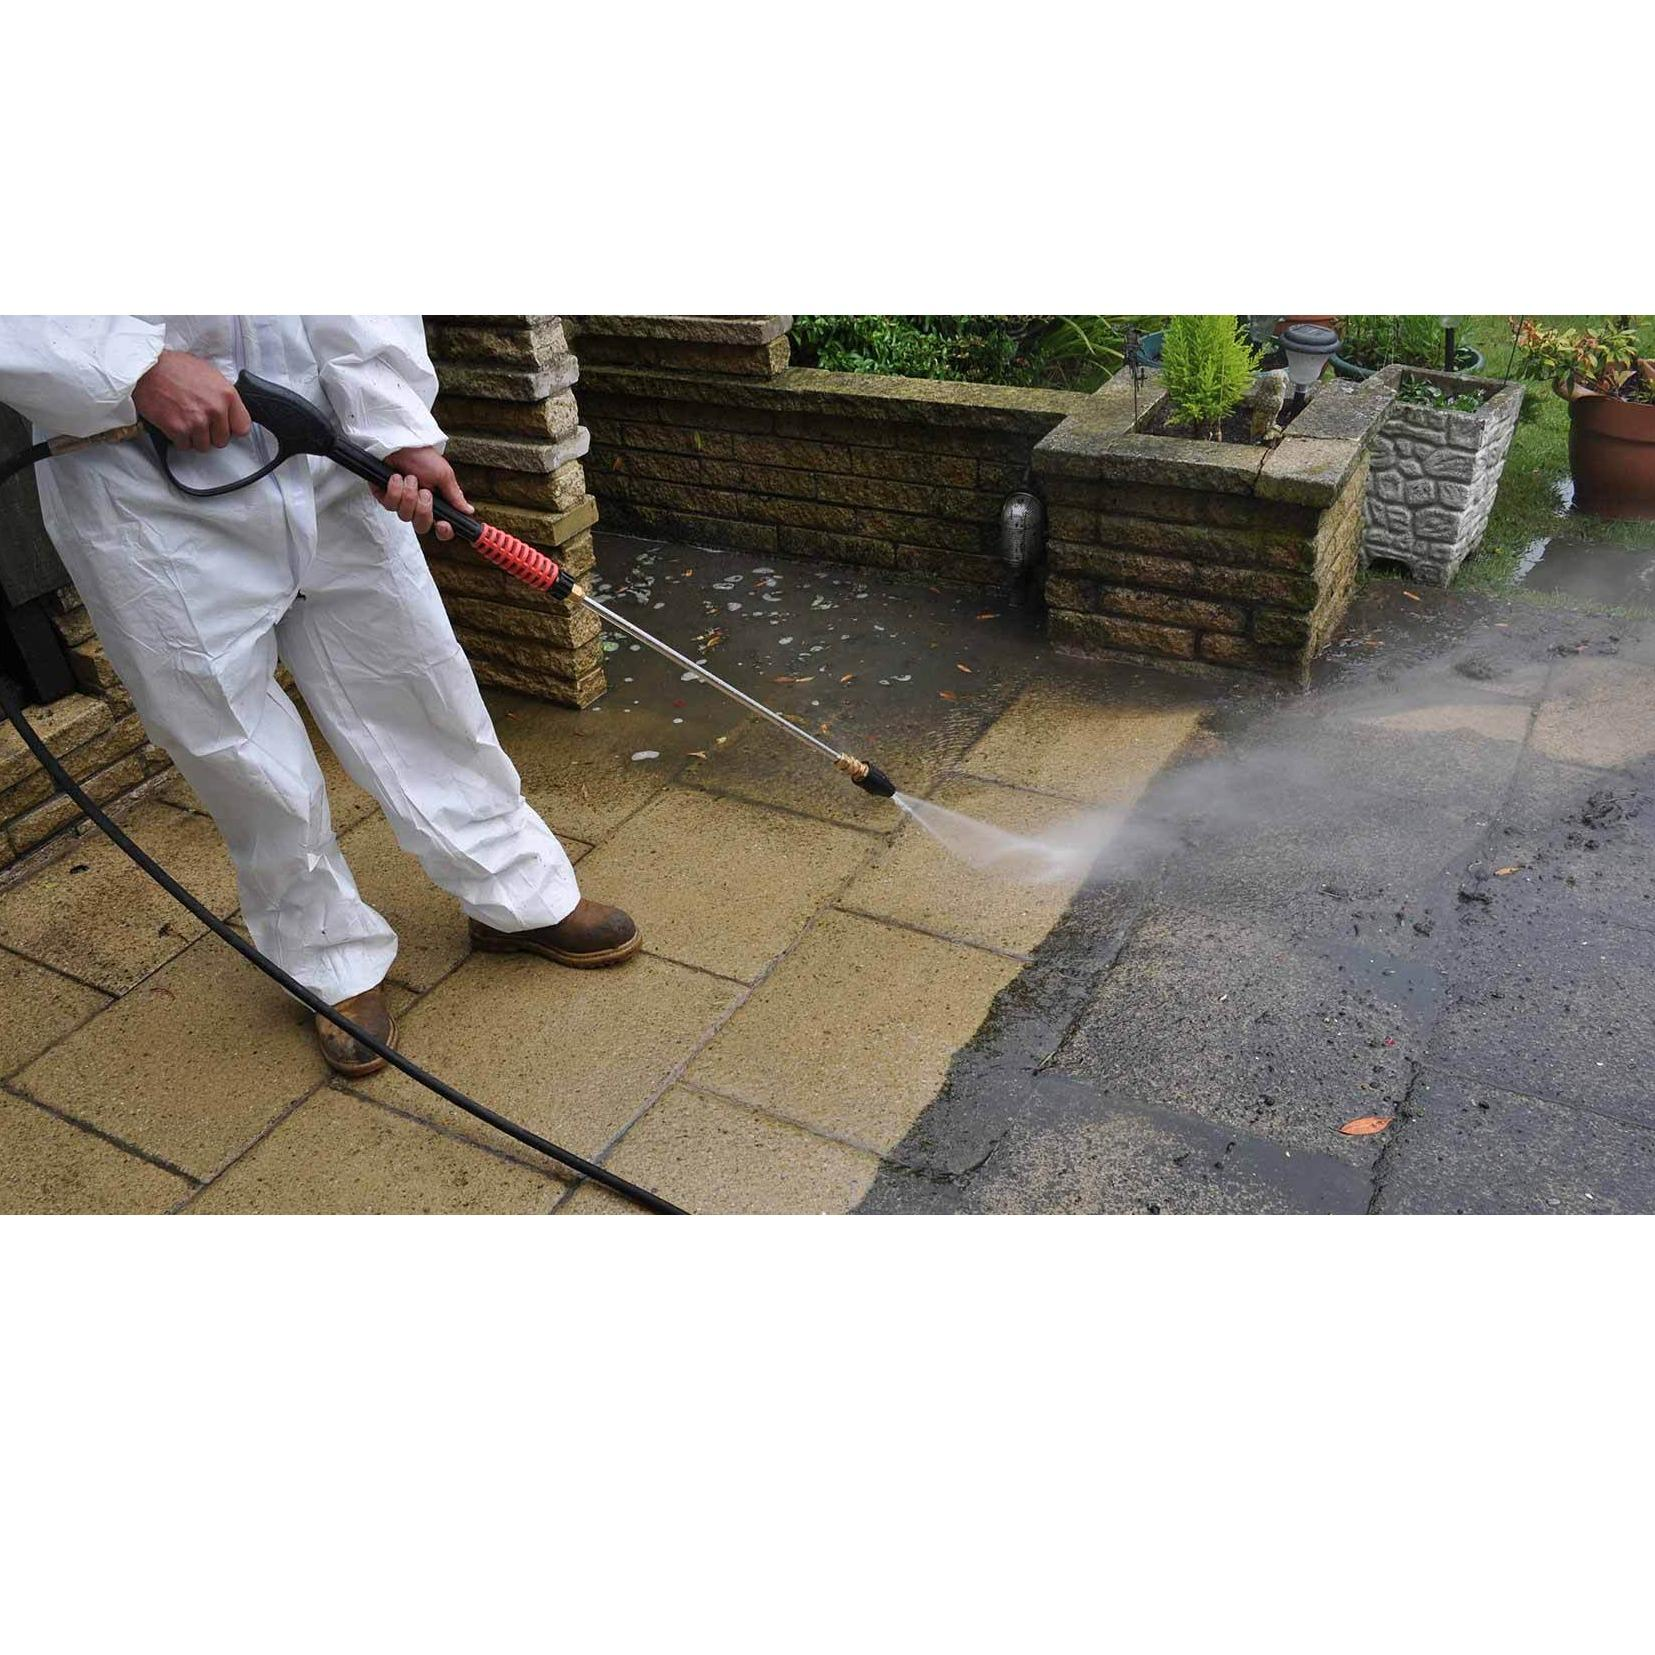 Blessed Bros Pressure Washing And Roof Cleaning LLC